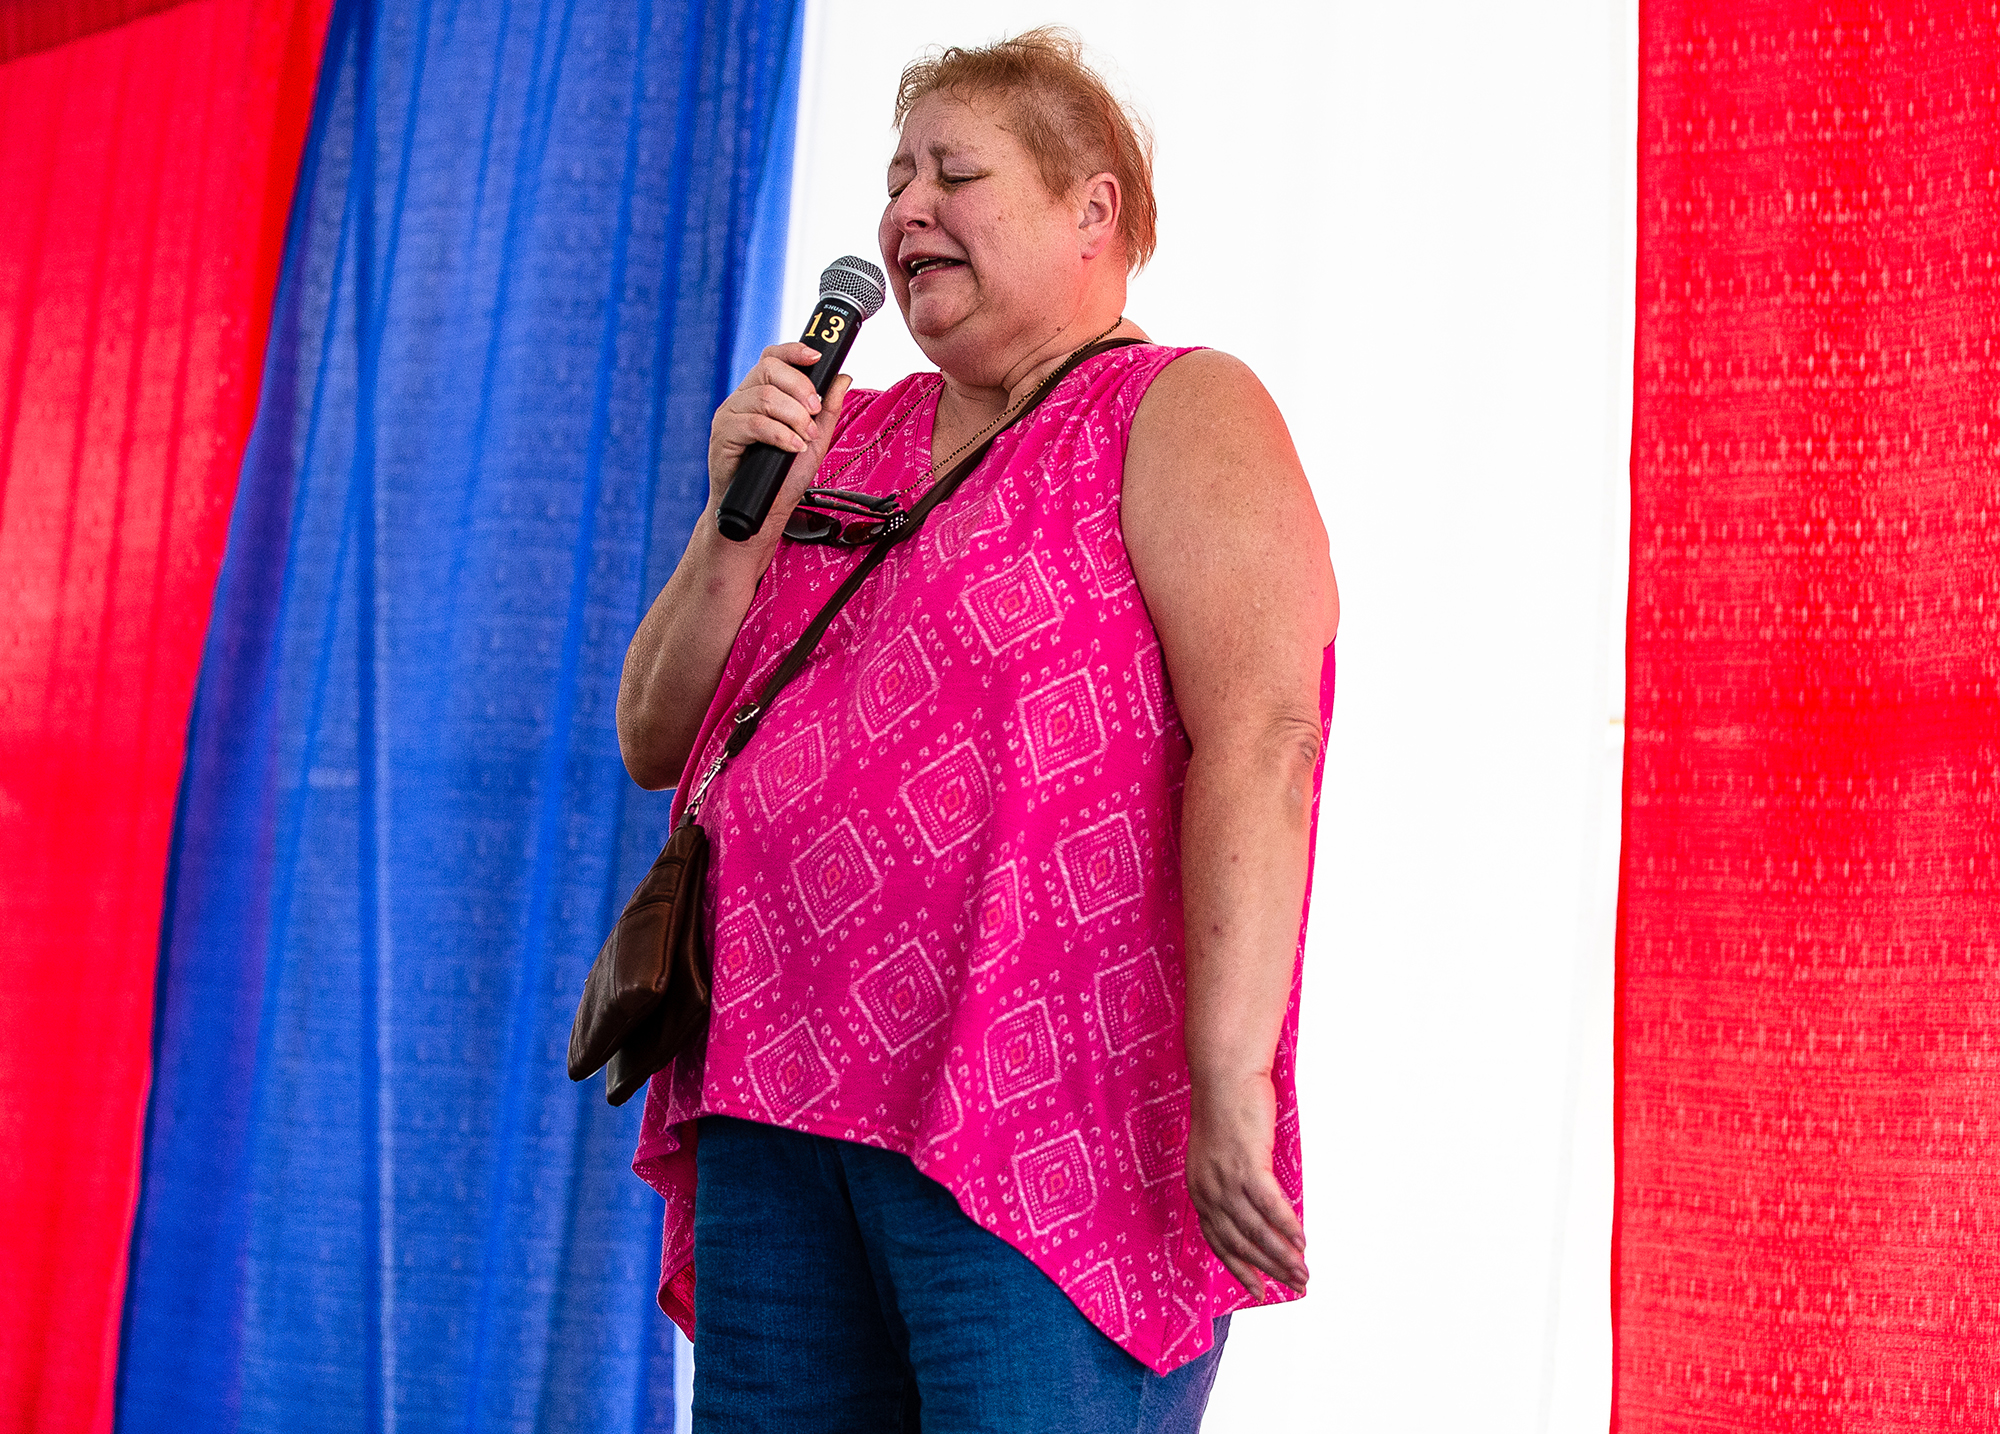 Shelly Flickinger gives her best performance to call in her husband to win the Husband Calling Contest during the Husband and Hog Calling contest inside the Ag Tent at the Illinois State Fairgrounds, Sunday, Aug. 12, 2018, in Springfield, Ill. [Justin L. Fowler/The State Journal-Register]